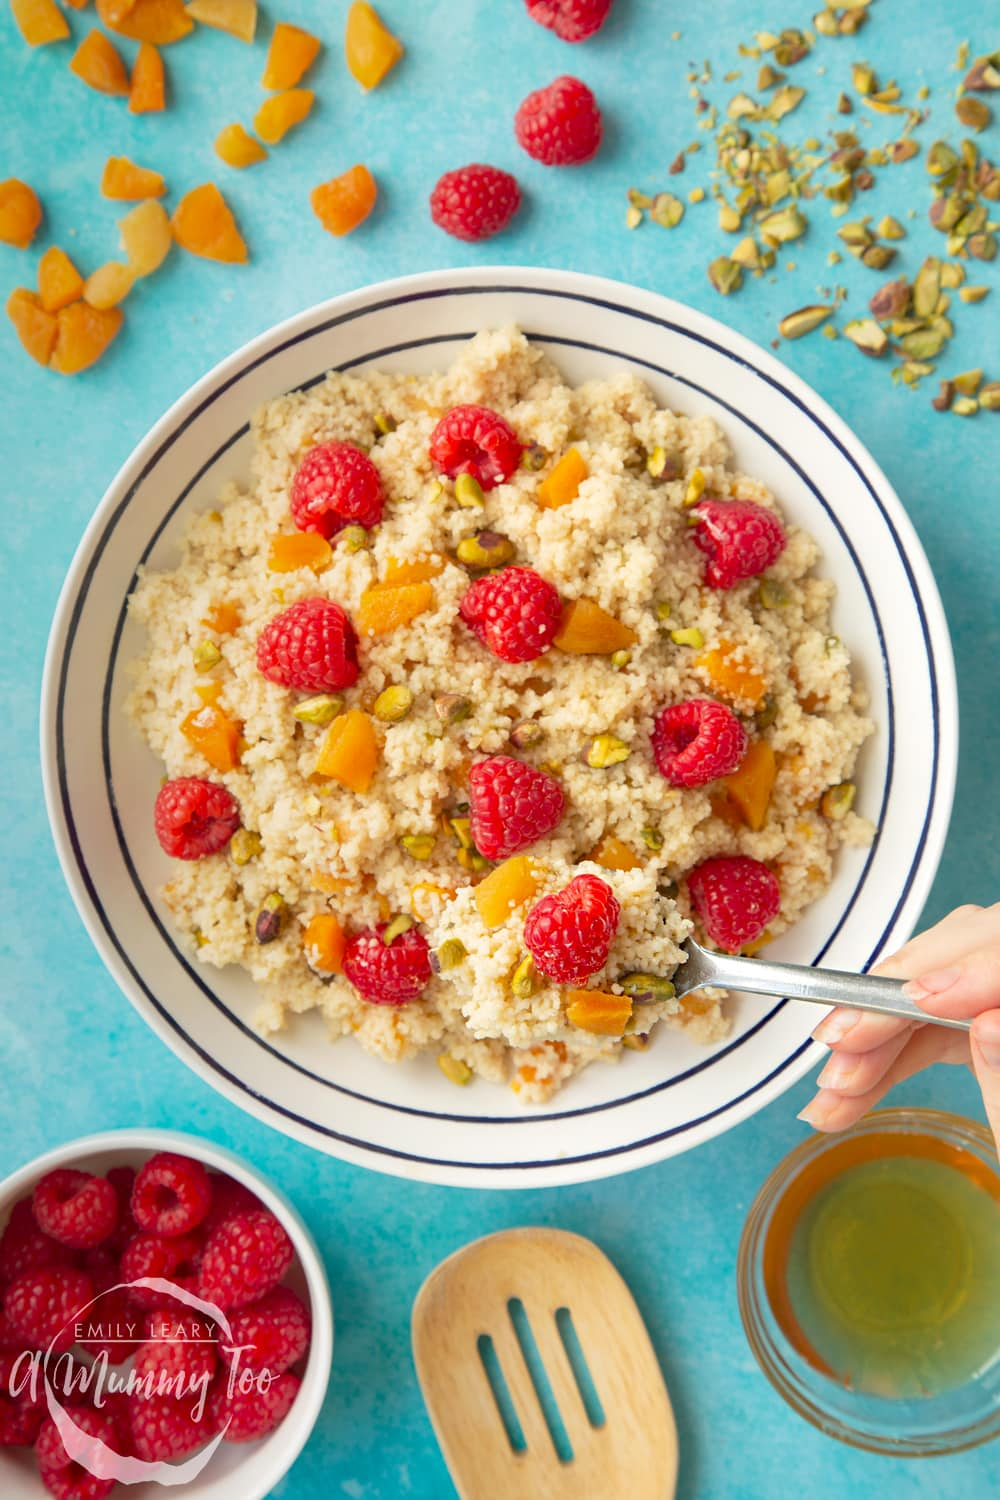 Overhead shot of a spoon going into the bowl of sweet breakfast couscous. The bowl is surrounded by ingredients required for the recipe.